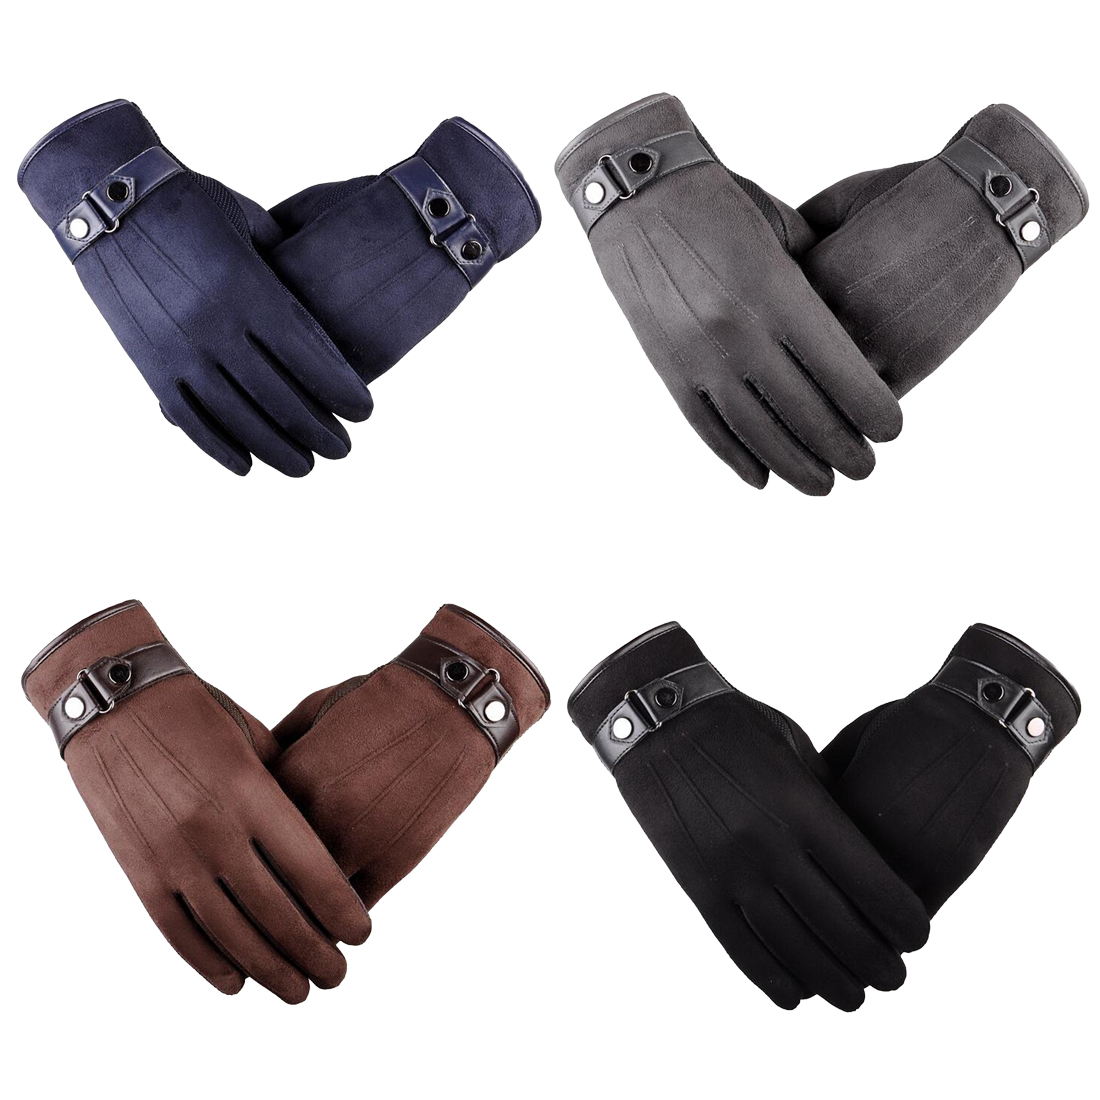 Autumn Winter Full Fingers Gloves Men Thicken Warm Cashmere Thermal Mittens Male Touching Screen Gloves For Smart Phone/Ipad